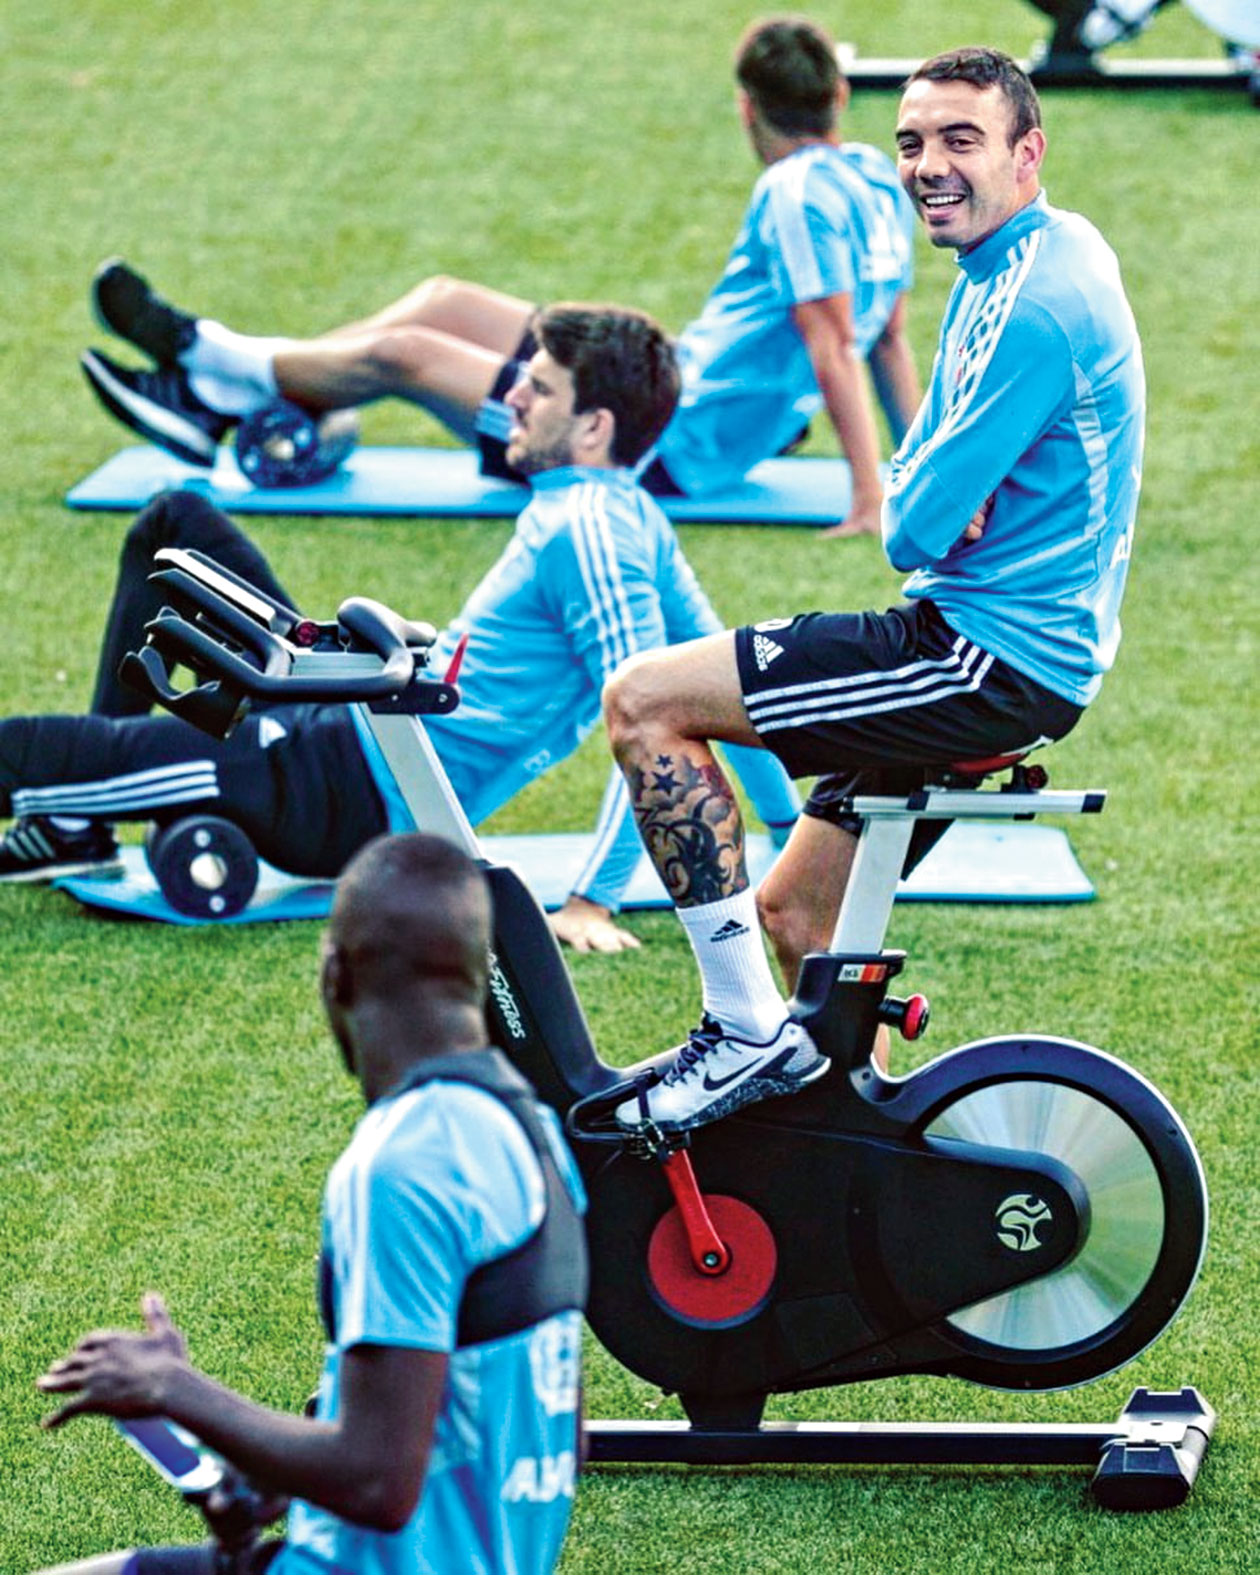 Iago Aspas (facing the camera) of La Liga club Celta Vigo during a training session with teammates on Thursday.